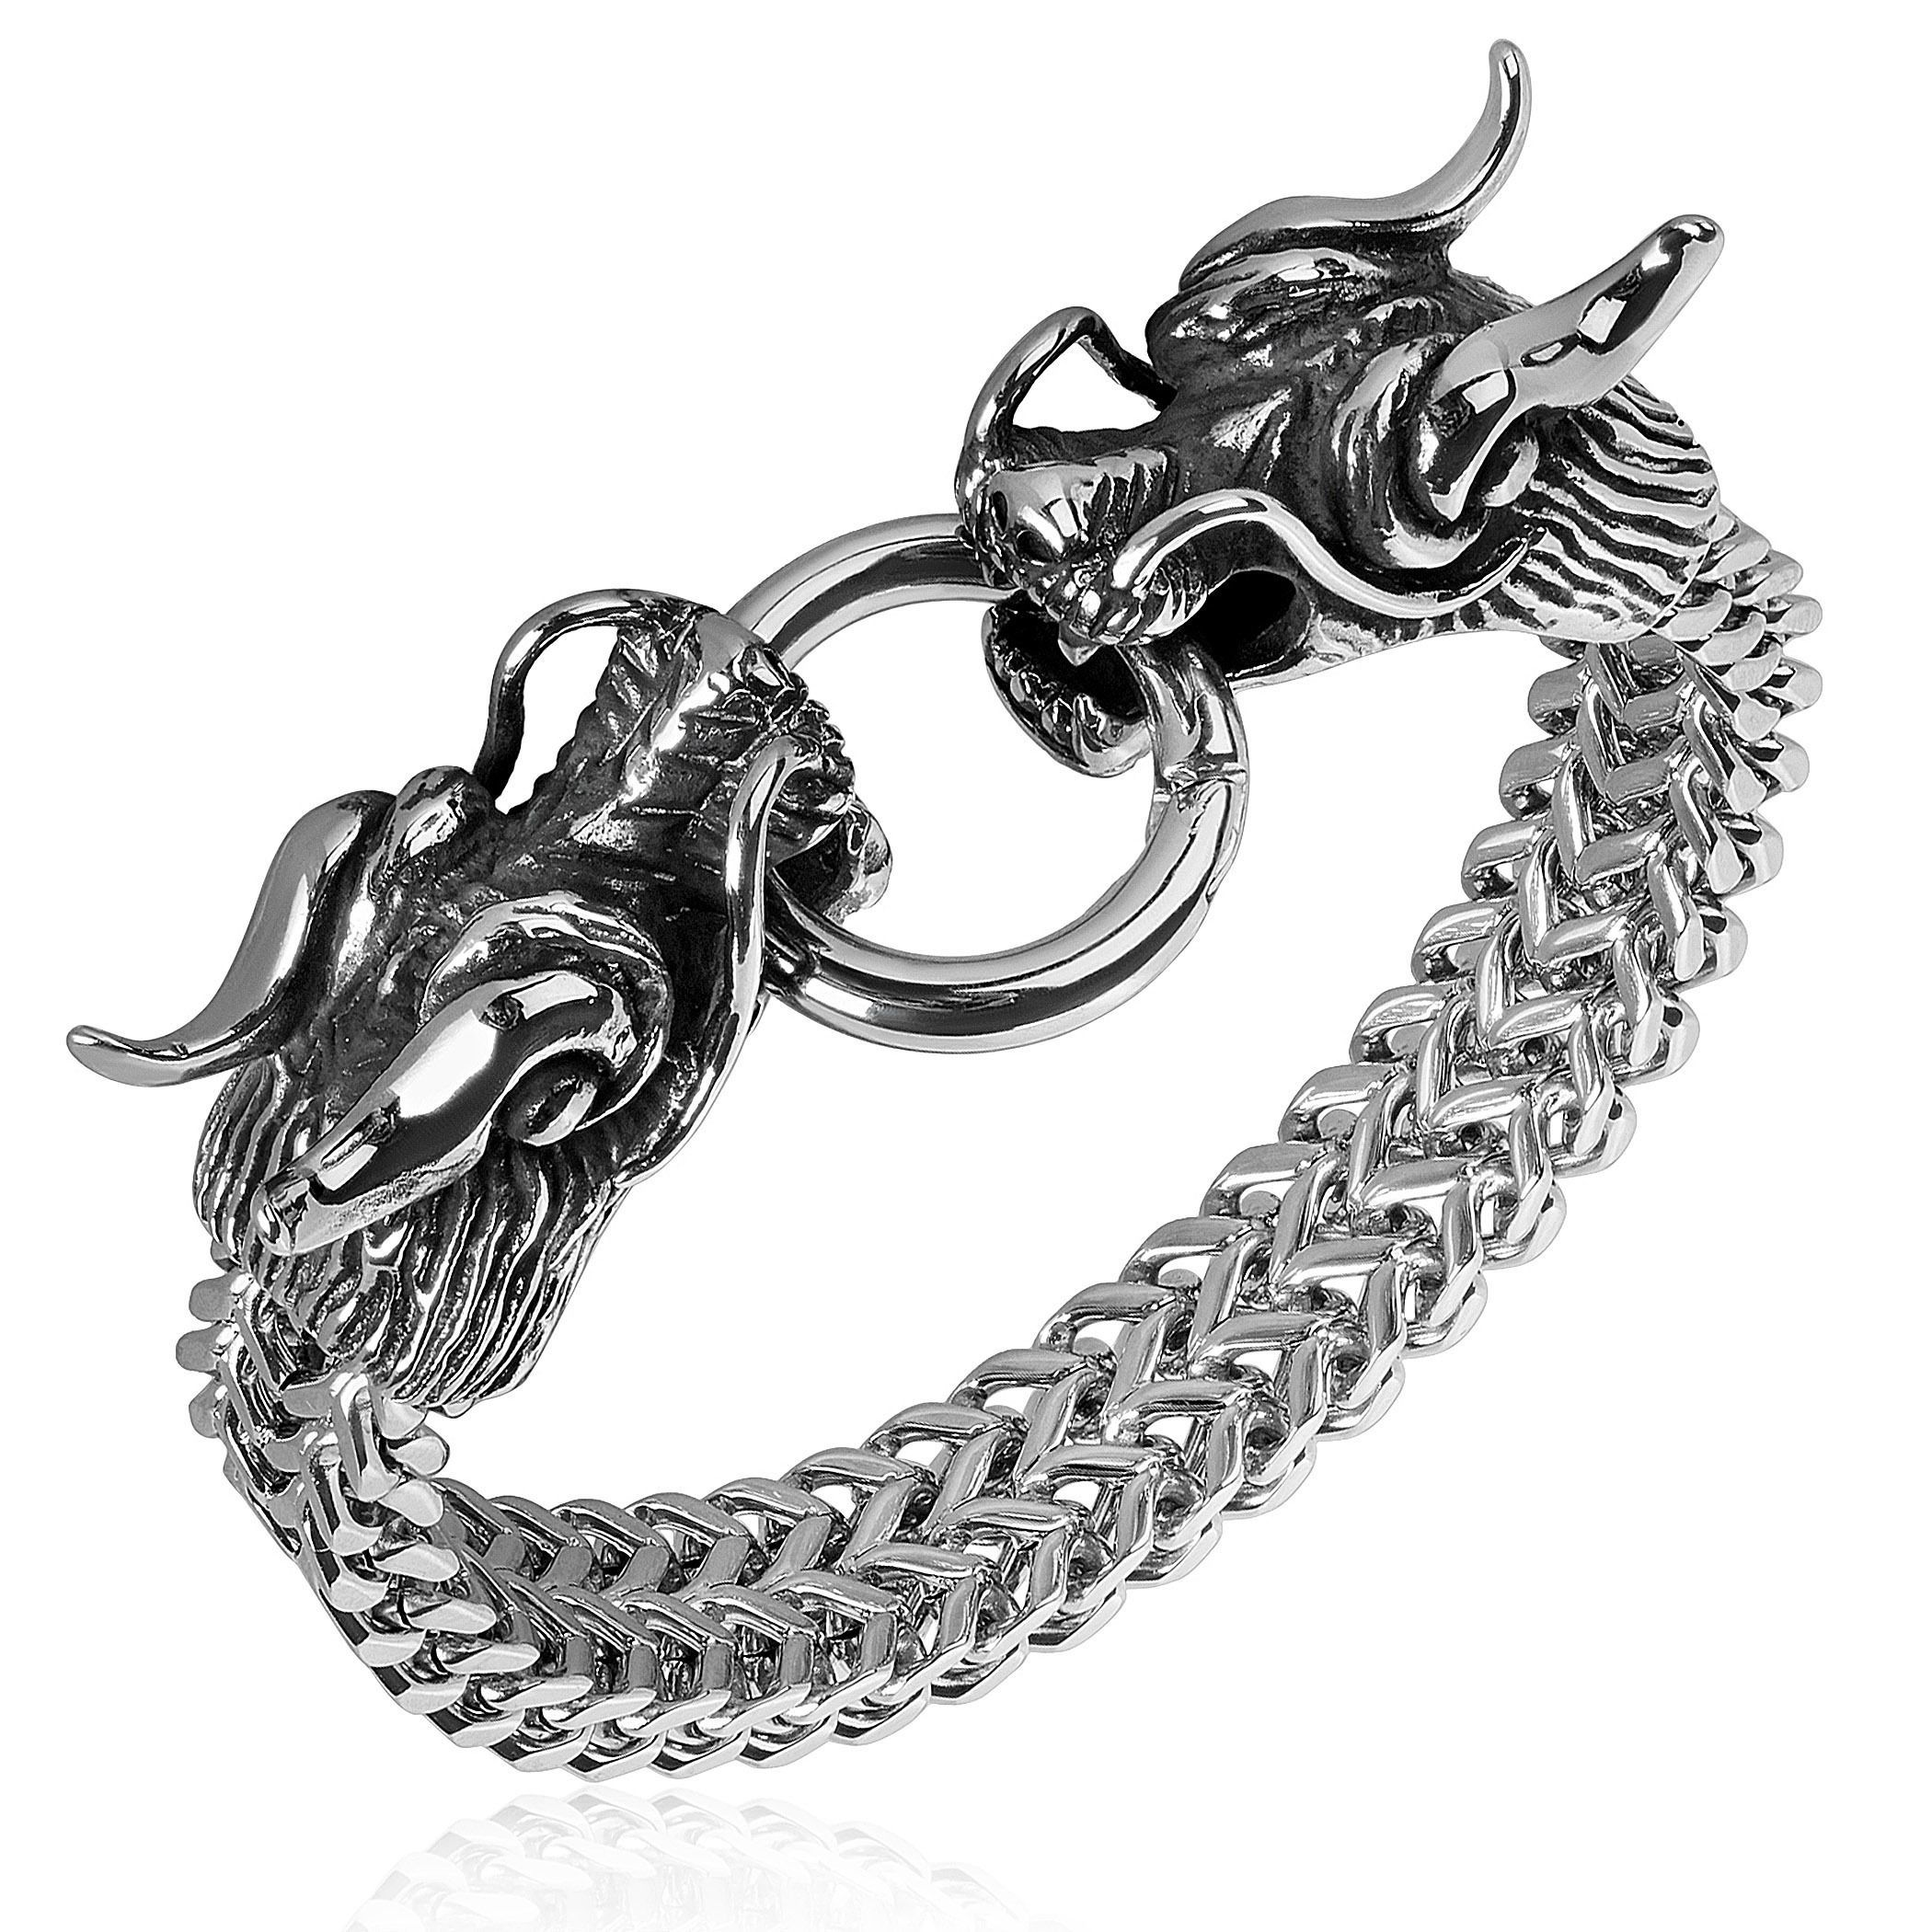 dragon sterling from bracelet chain novica thailand p silver large chains links dazzling link